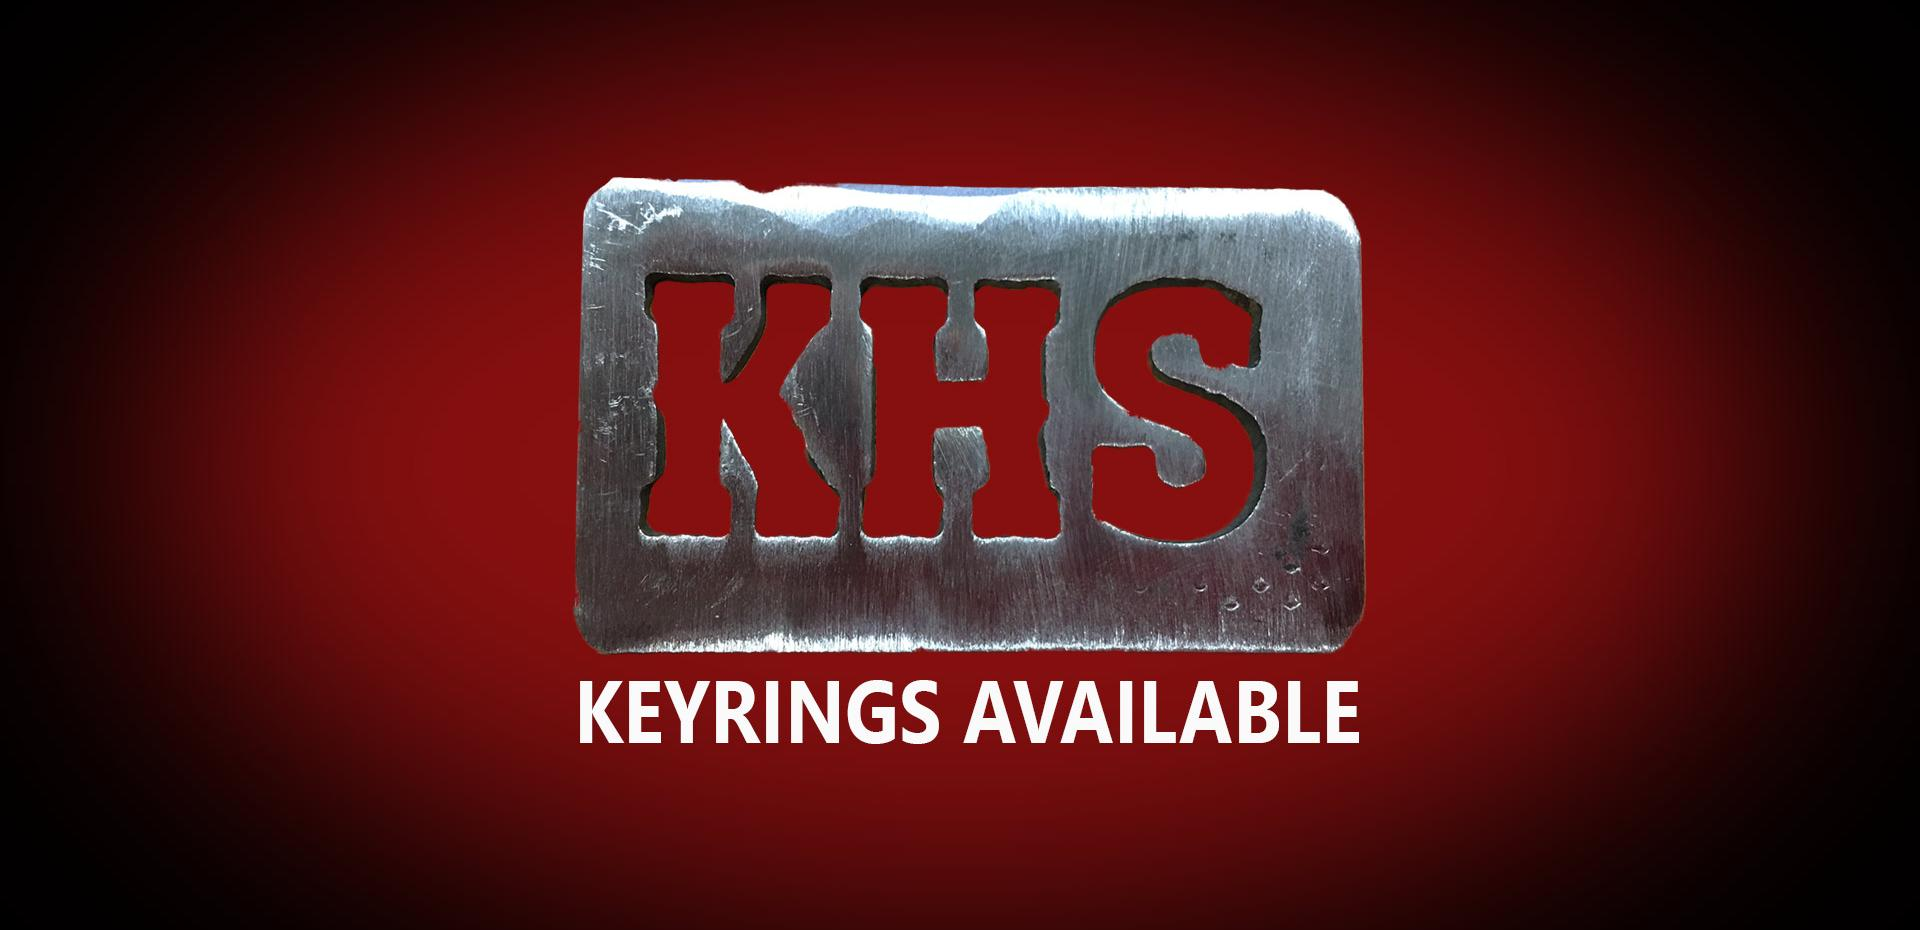 KHS Keyrings available